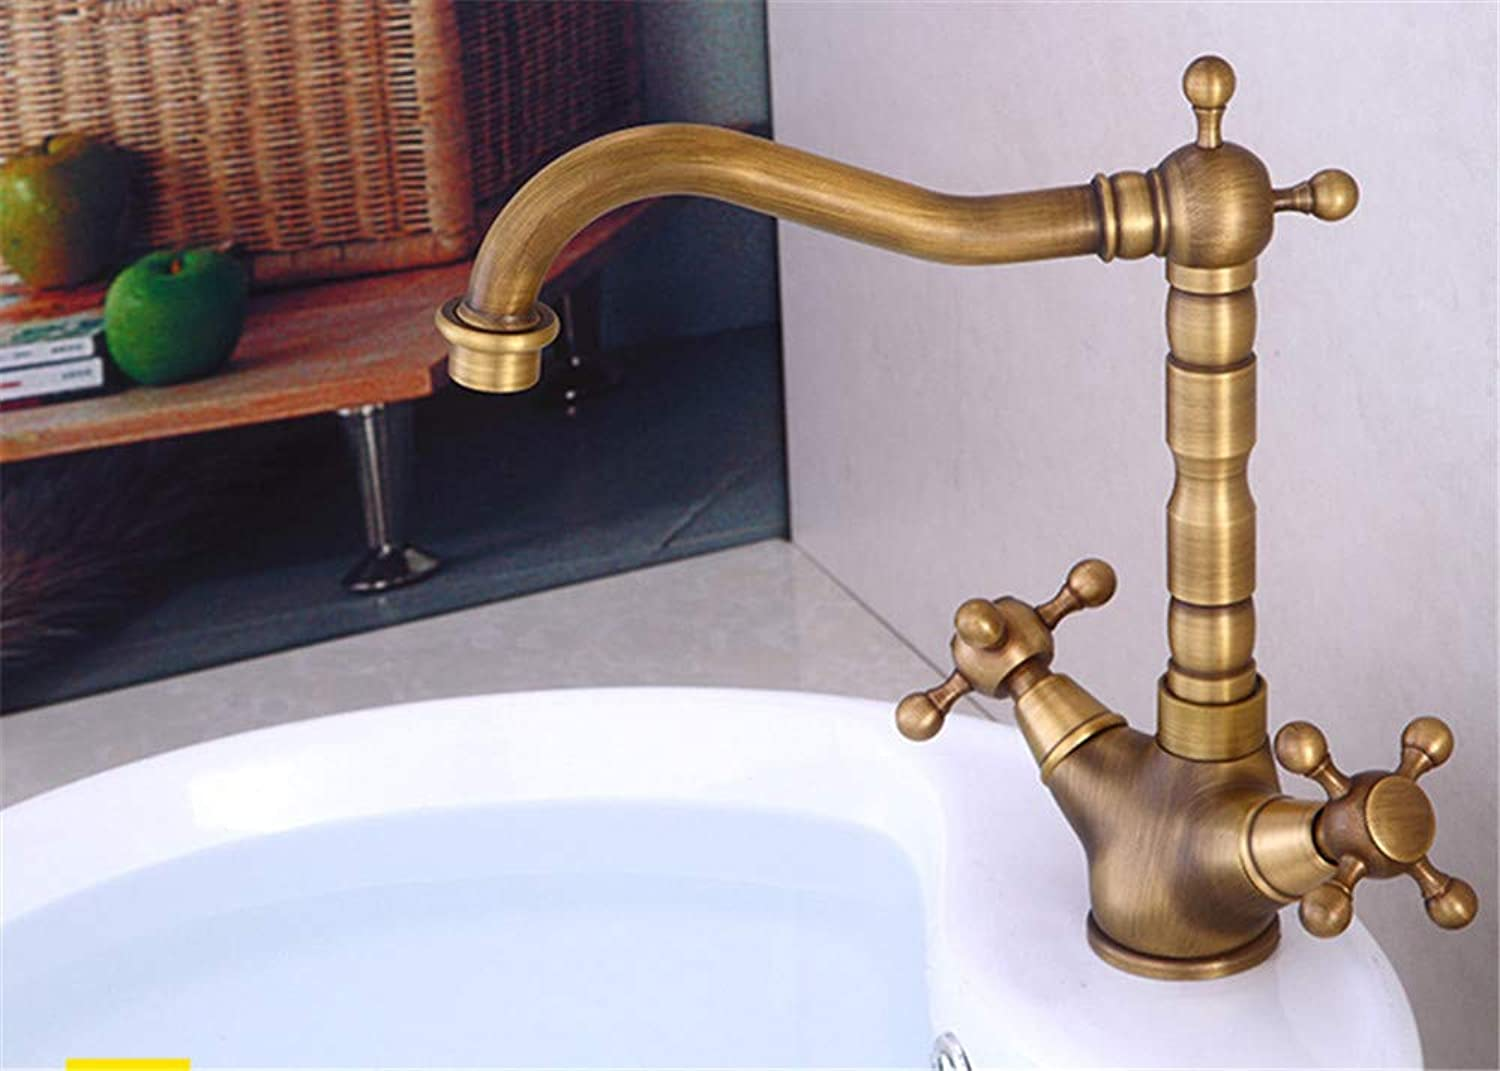 XPYFaucet Faucet Tap Taps All-copper European basin redating hot and cold water high single hole single handle